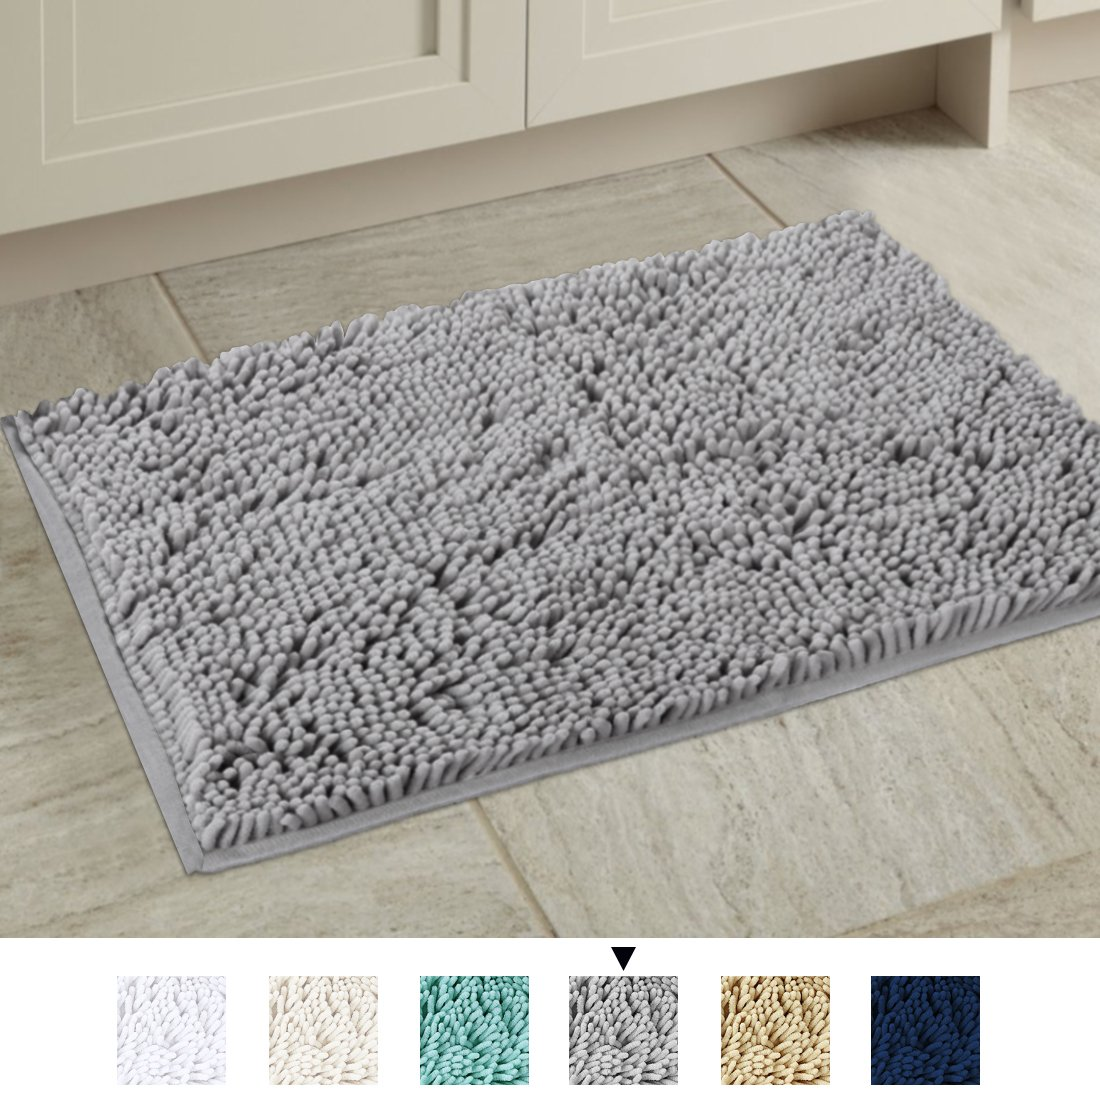 H Versailtex Bath Mat Super Soft Bath Rug For Bathrooms Microfiber